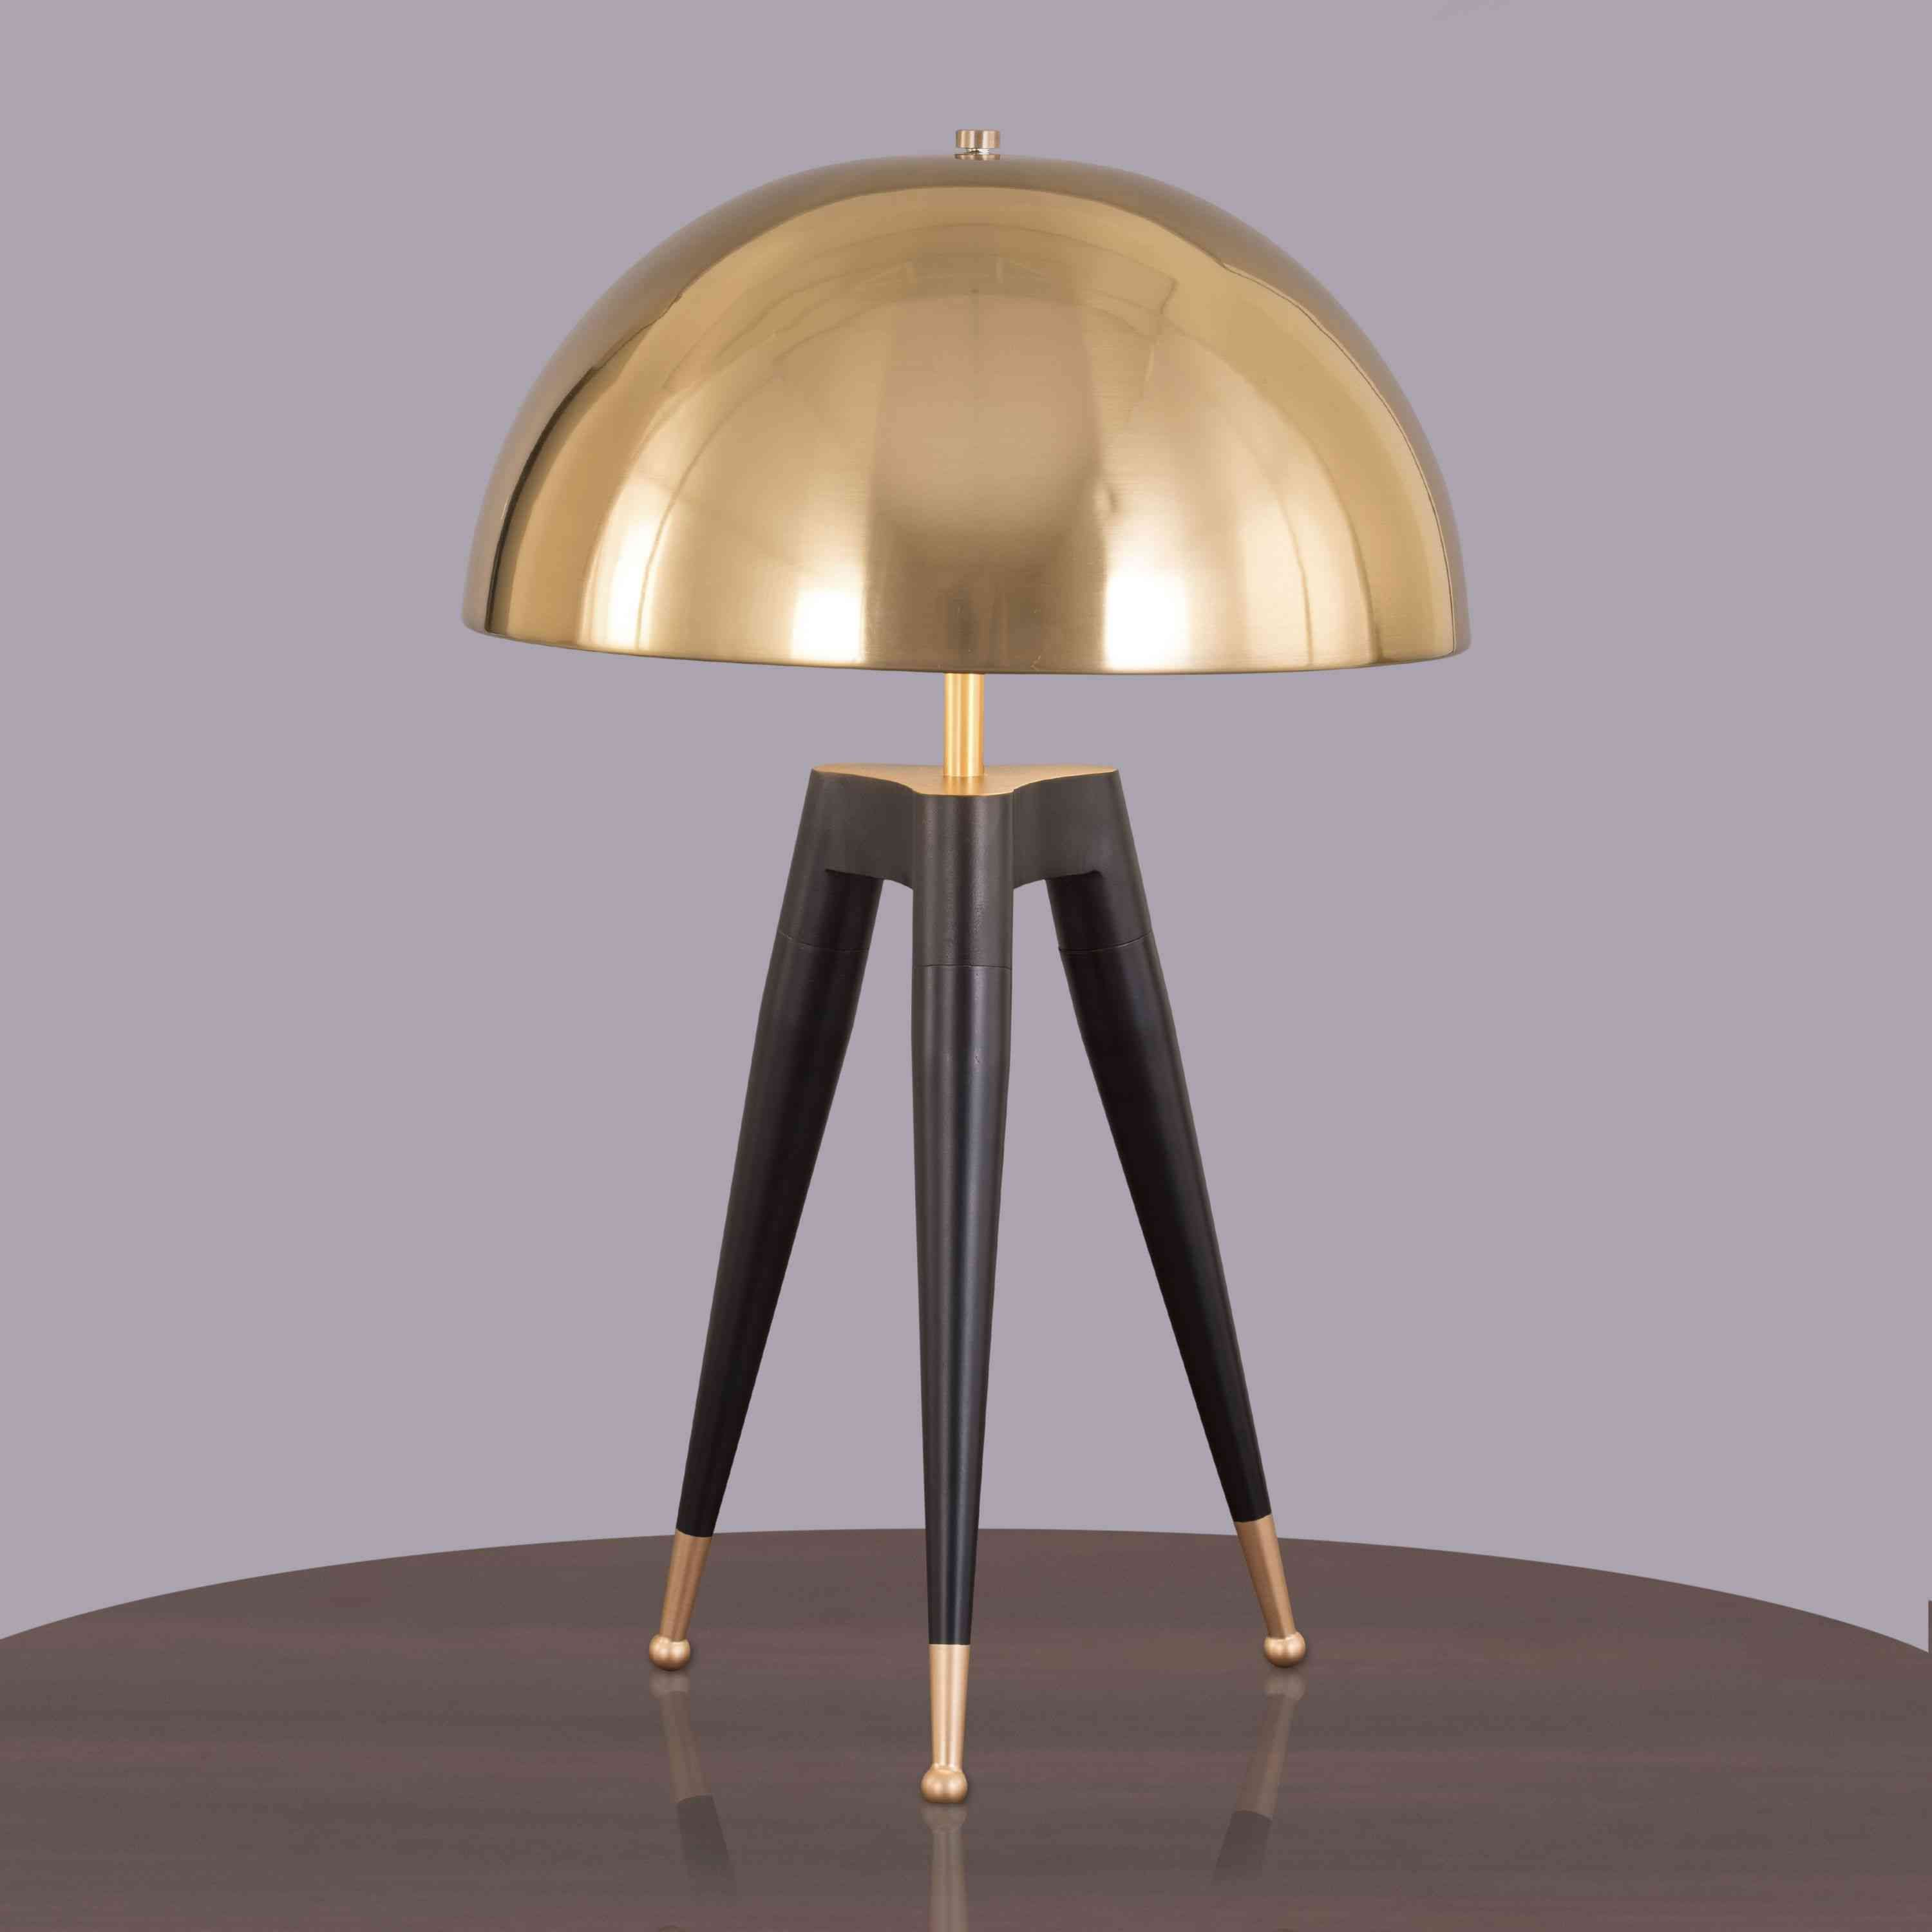 Garden Of Eden Table Lamp Buy Premium Table Lamps Online In India At A Great Price From India S Top Home Decorative Lighti Lamps Living Room Floor Lamp Lamp